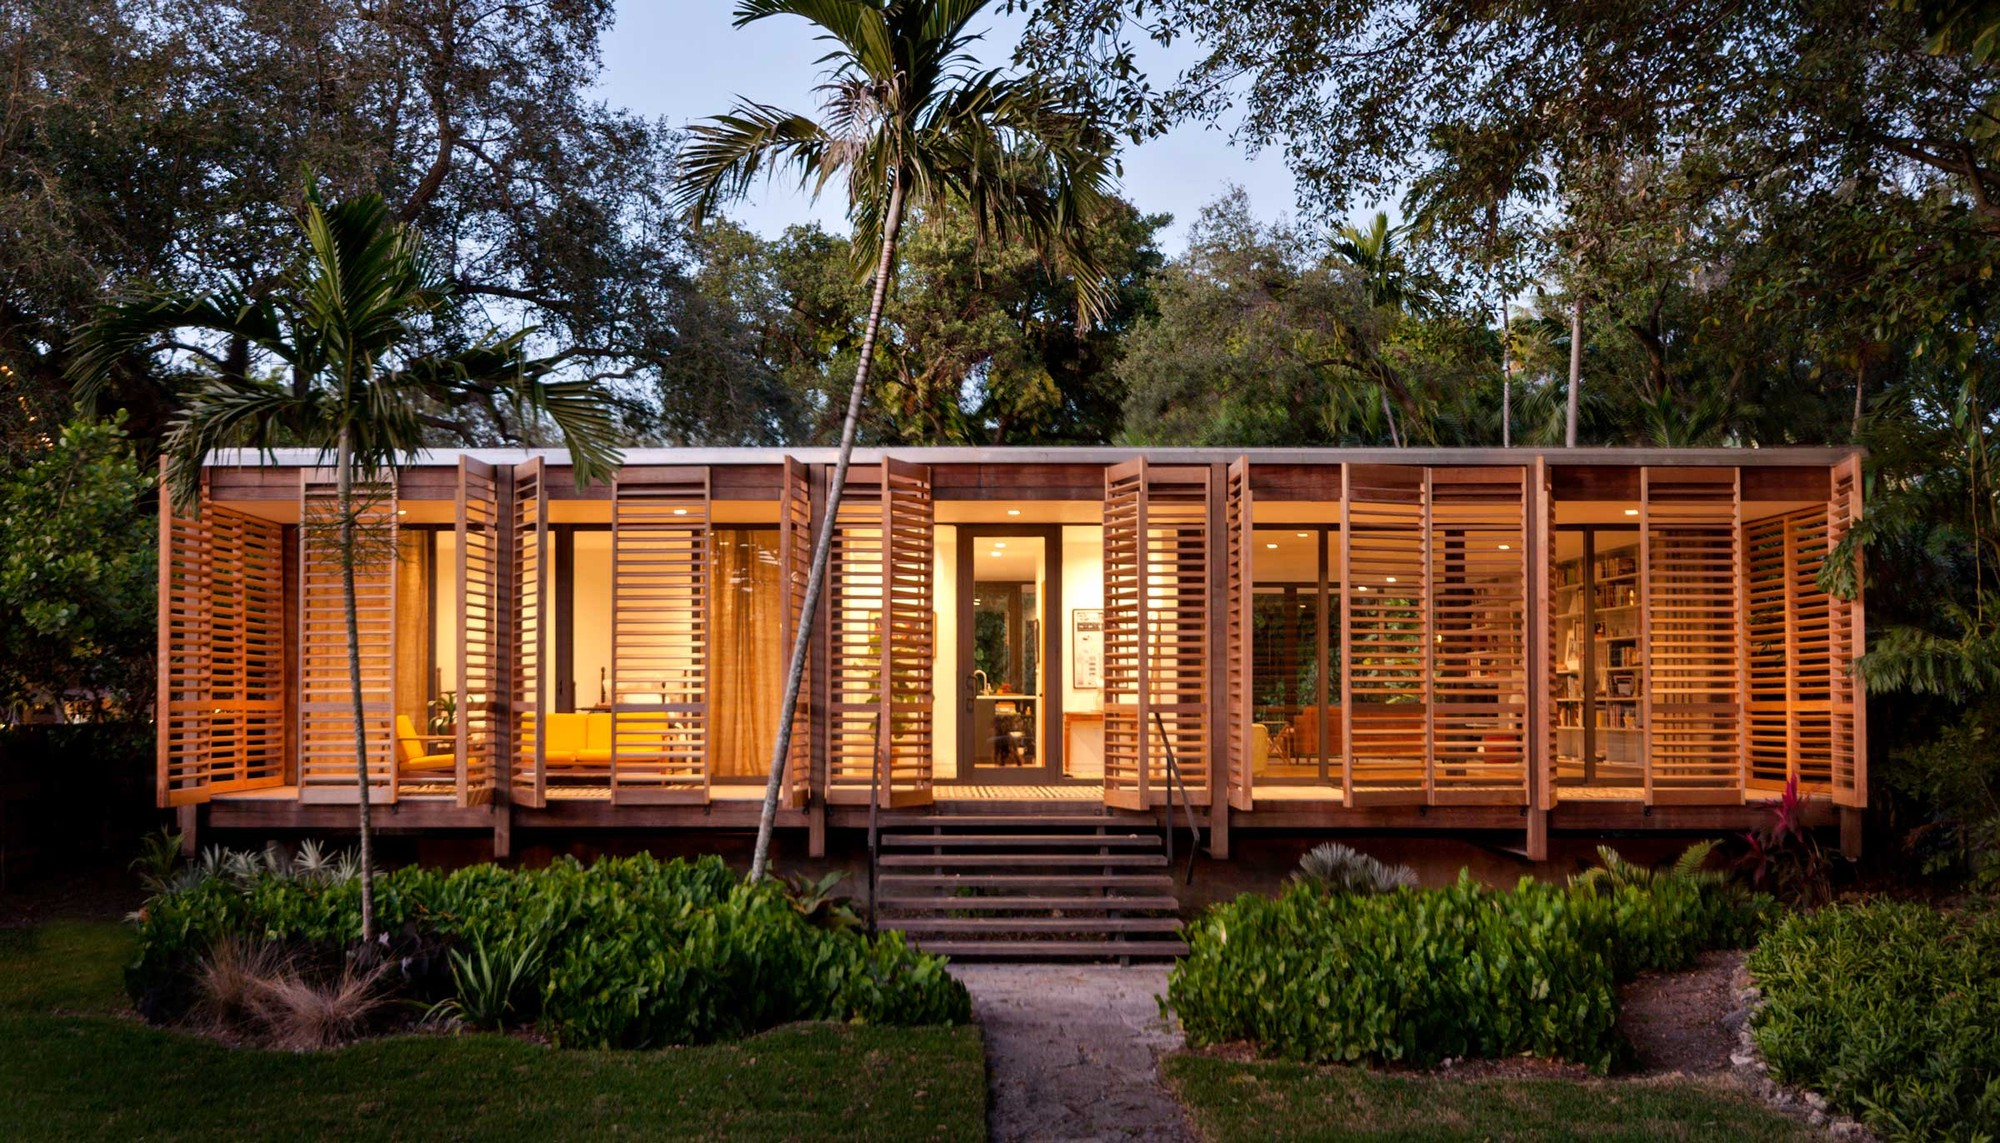 Brillhart House / Brillhart Architecture | ArchDaily on paul rudolph homes, south west homes, interior design homes, florida bungalow homes, florida lifestyles homes, florida villa homes, florida house plans, florida family homes, florida real estate homes, architectural record homes, florida luxury homes, florida abandoned homes, florida coastline homes, florida style house, veranda homes,